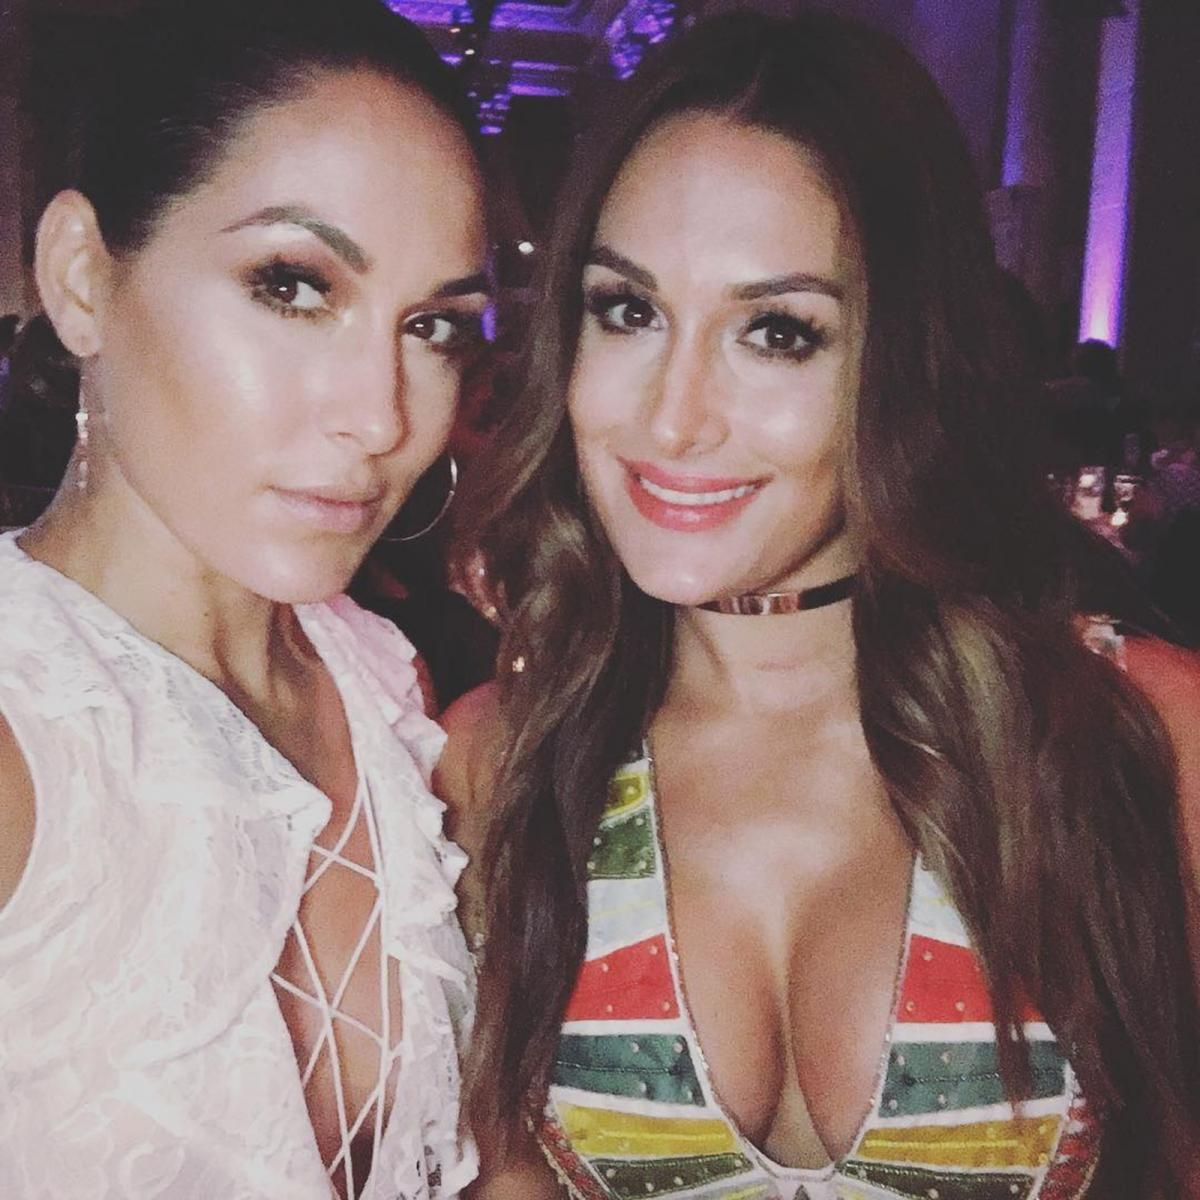 Pussy Instagram The Bella Twins naked photo 2017